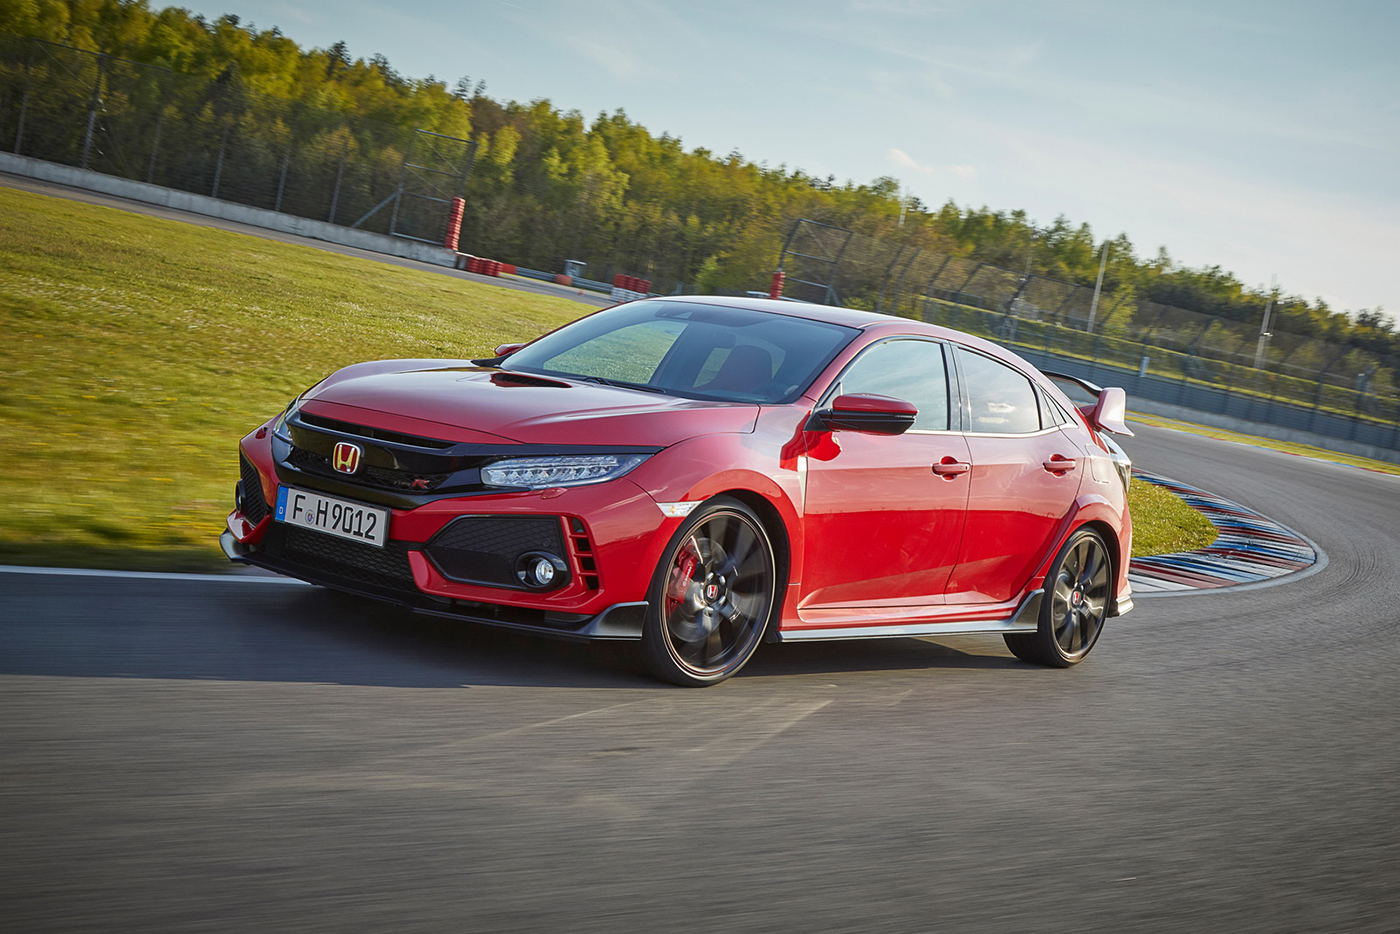 honda-civic-type-r-2018-7.jpg